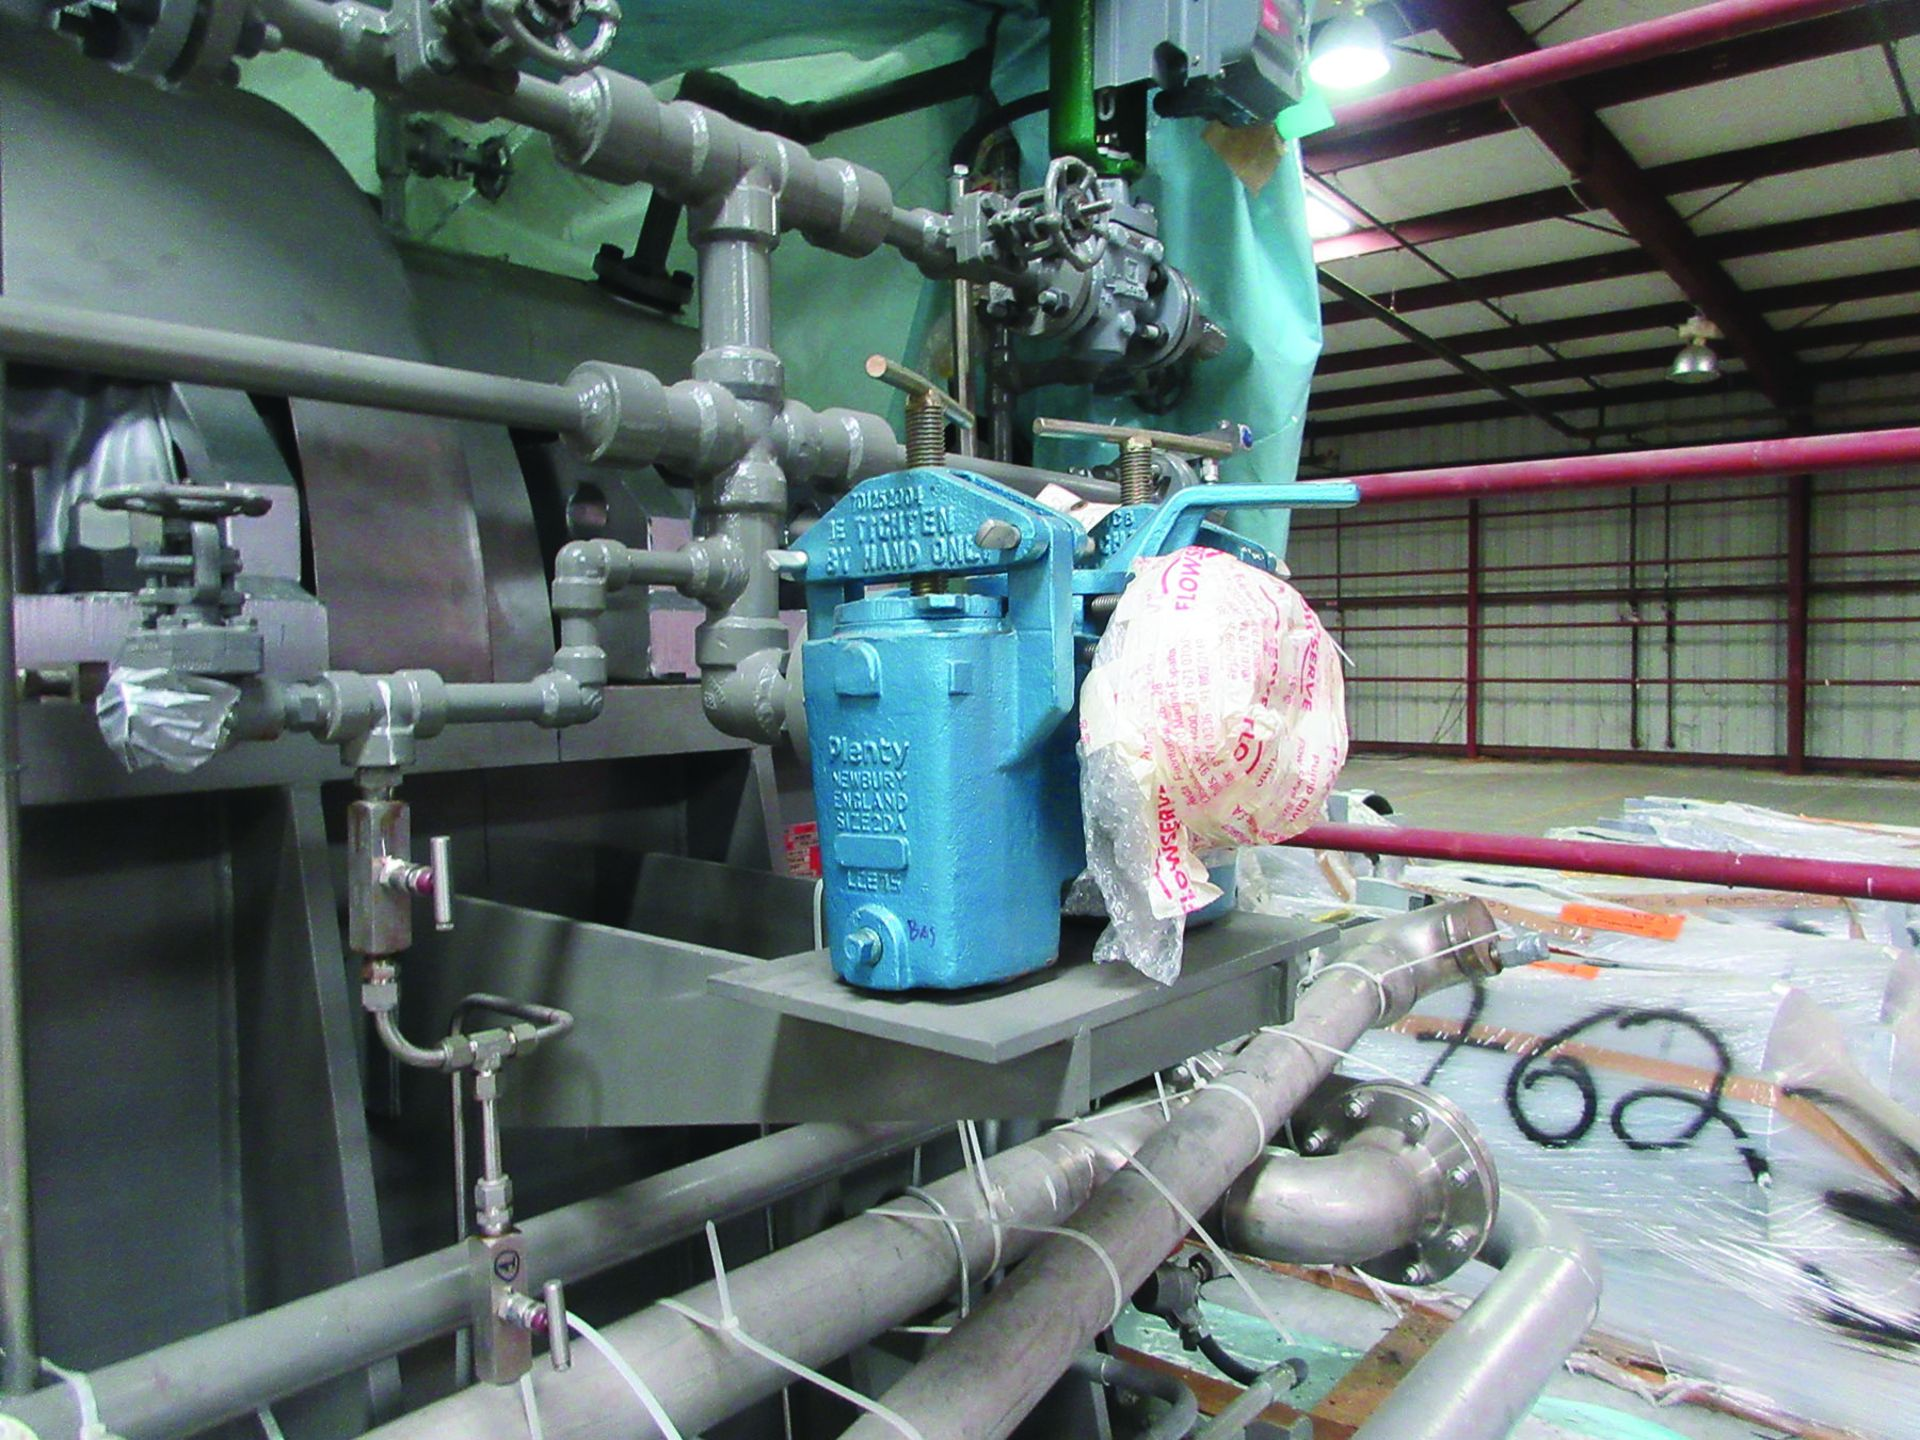 2008 FLOWSERVE BOILER FEED WATER PUMP, SIZE 80-CHTA-6, 5,500 RPM, CAP. 5,440 GPM, MAWT 375° F, MAWP: - Image 5 of 7